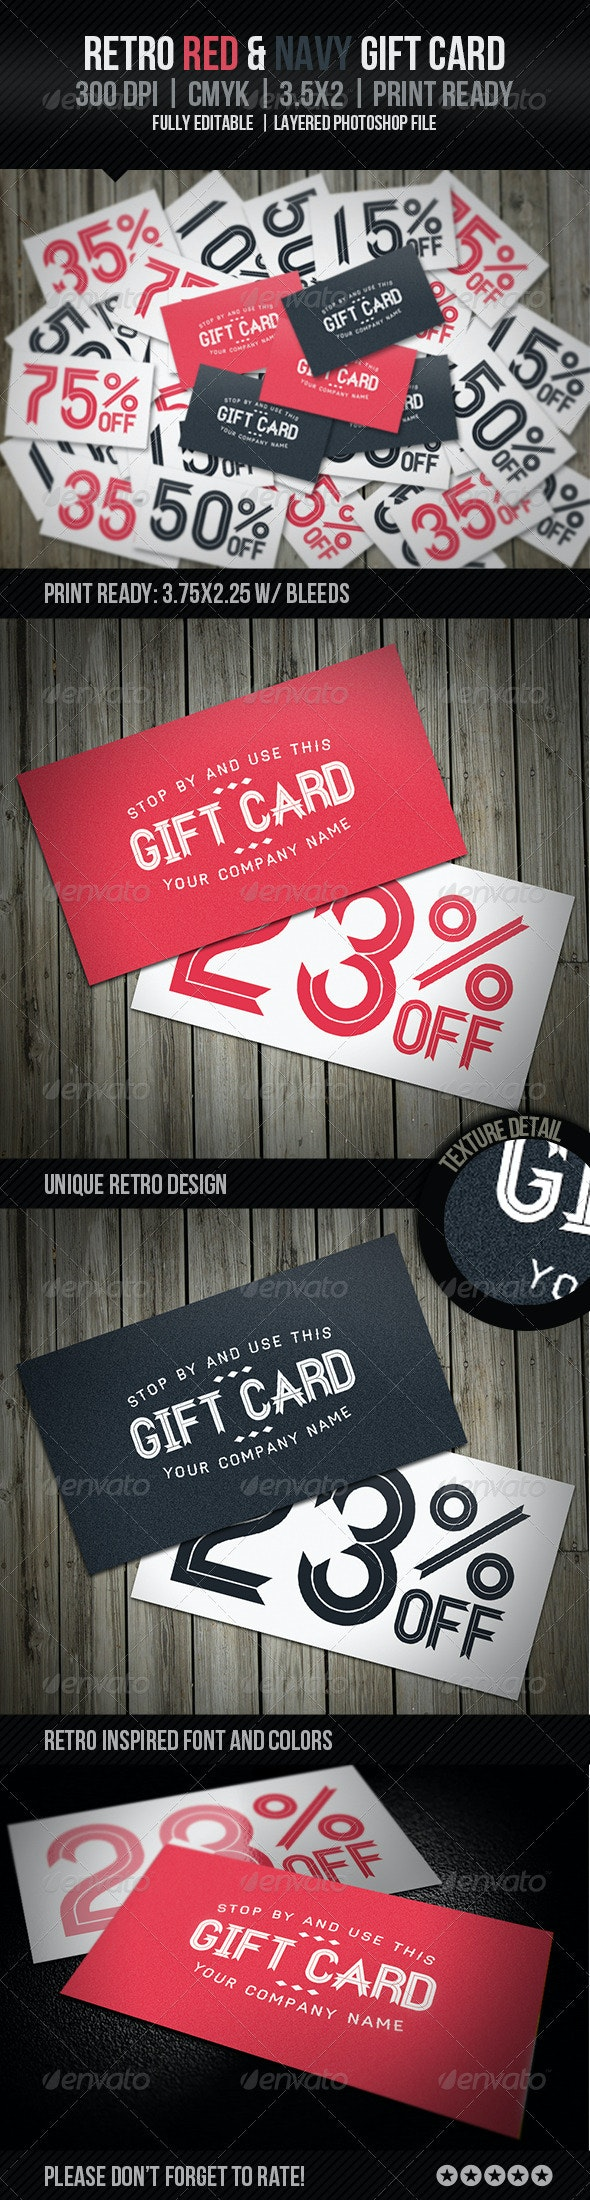 Retro Red & Navy Gift Card - Loyalty Cards Cards & Invites